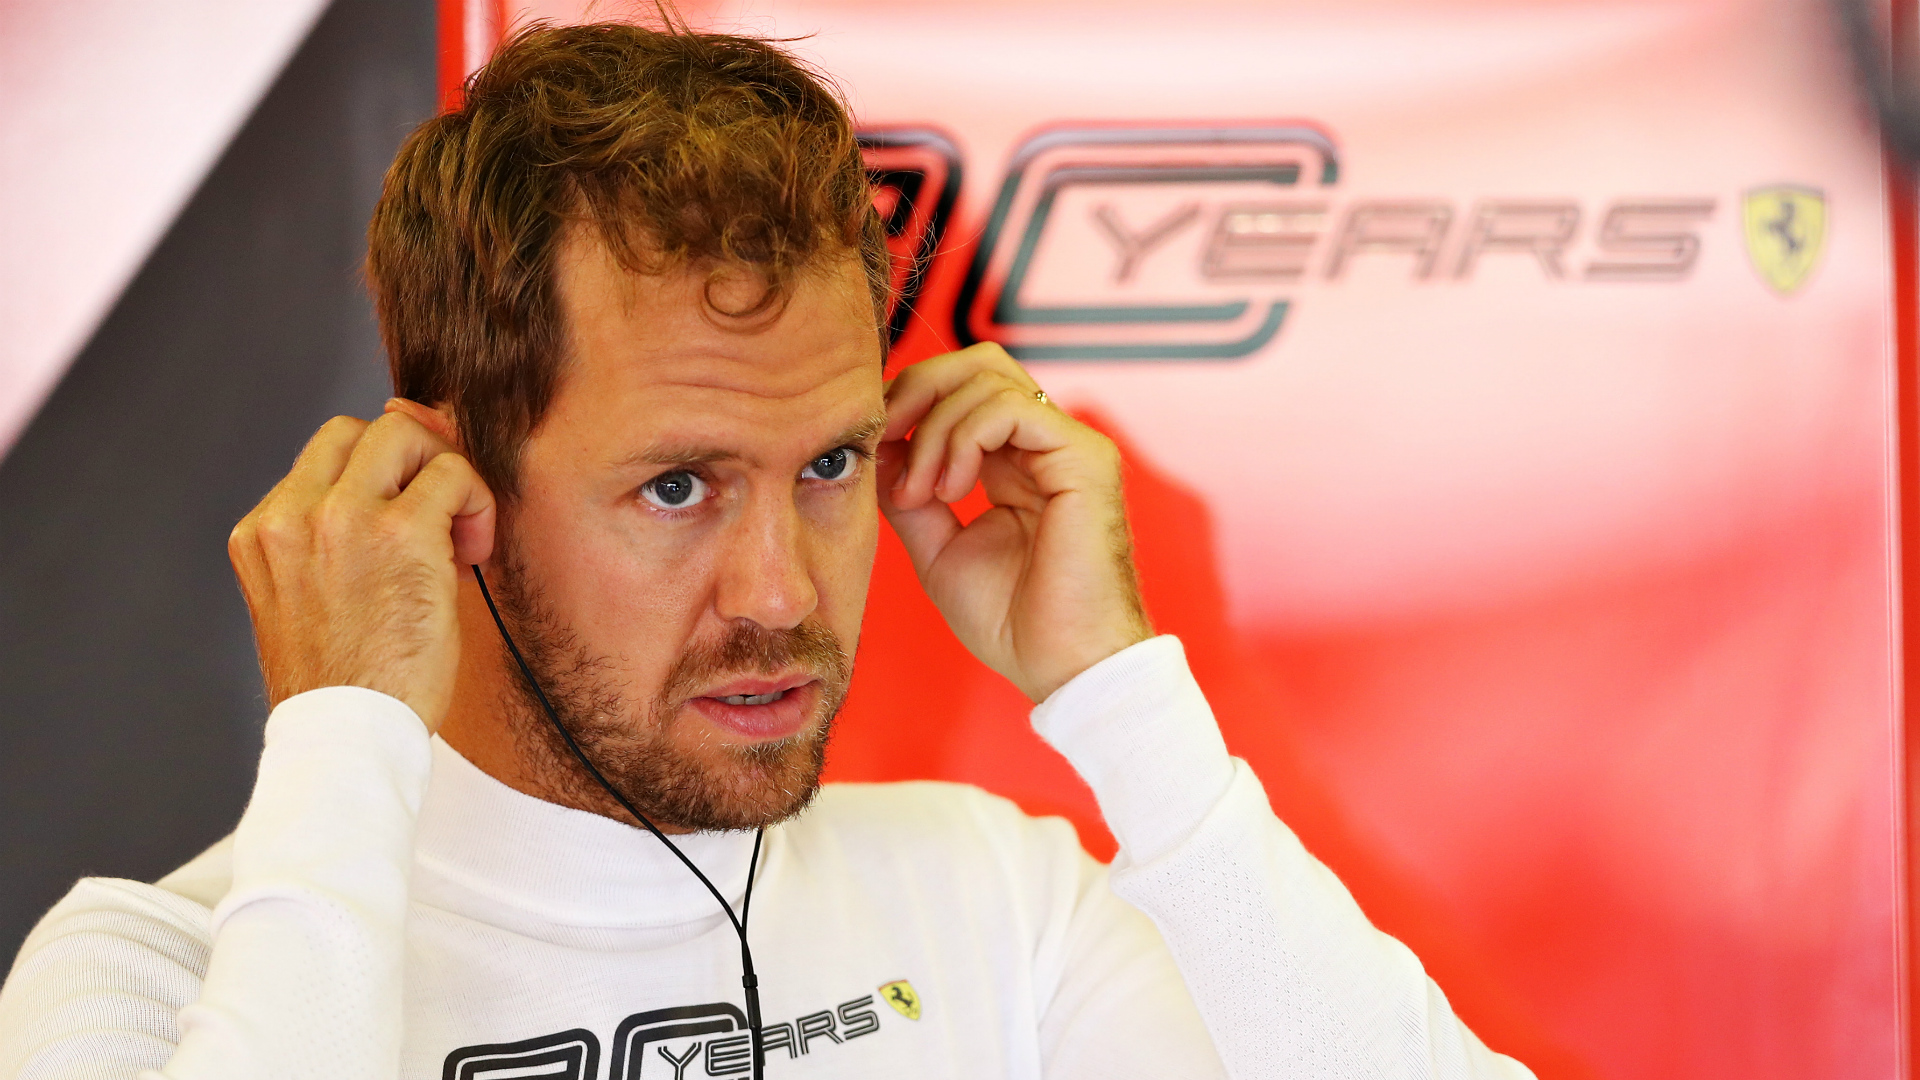 At least I took part! – Vettel after latest qualifying struggles